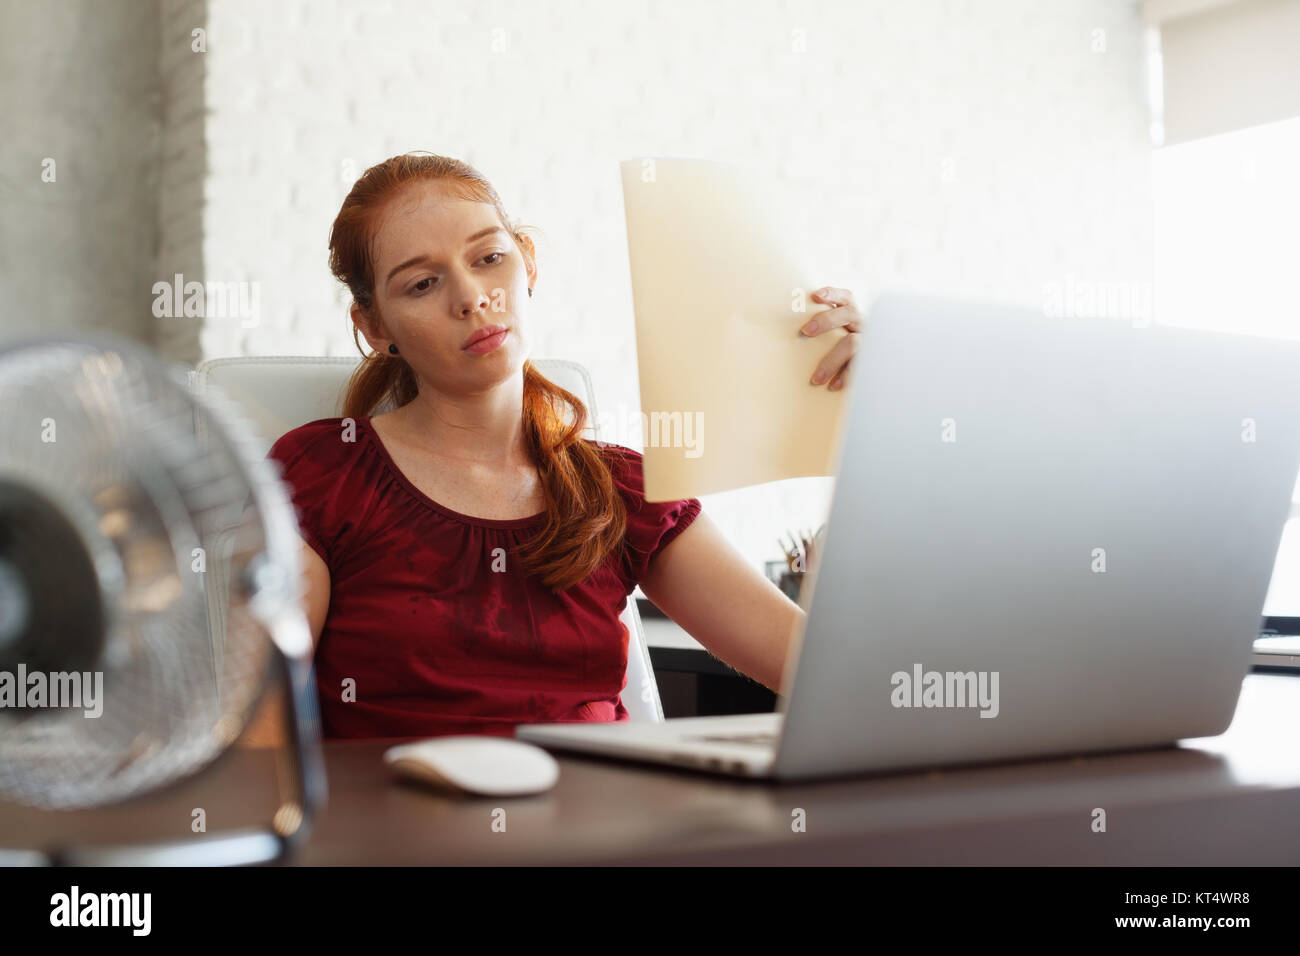 Portrait of young redhead woman working with computer laptop in office at summer during heatwave. The temperature - Stock Image